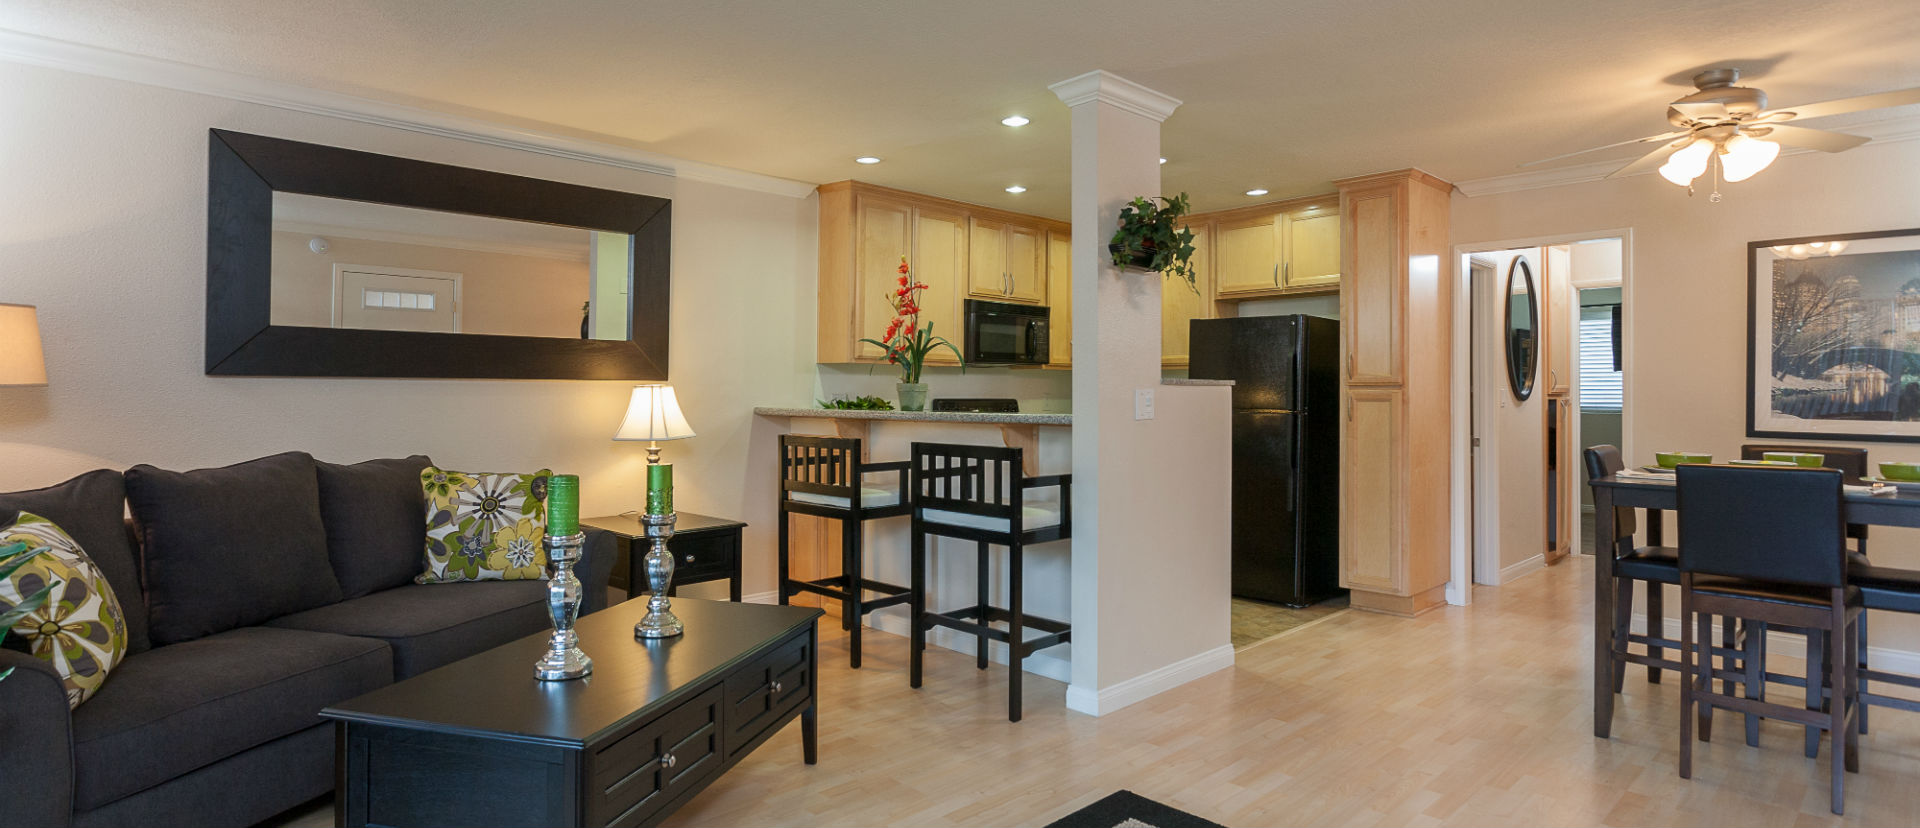 Apartments For Rent In Anaheim, CA | Summer Crest Apts